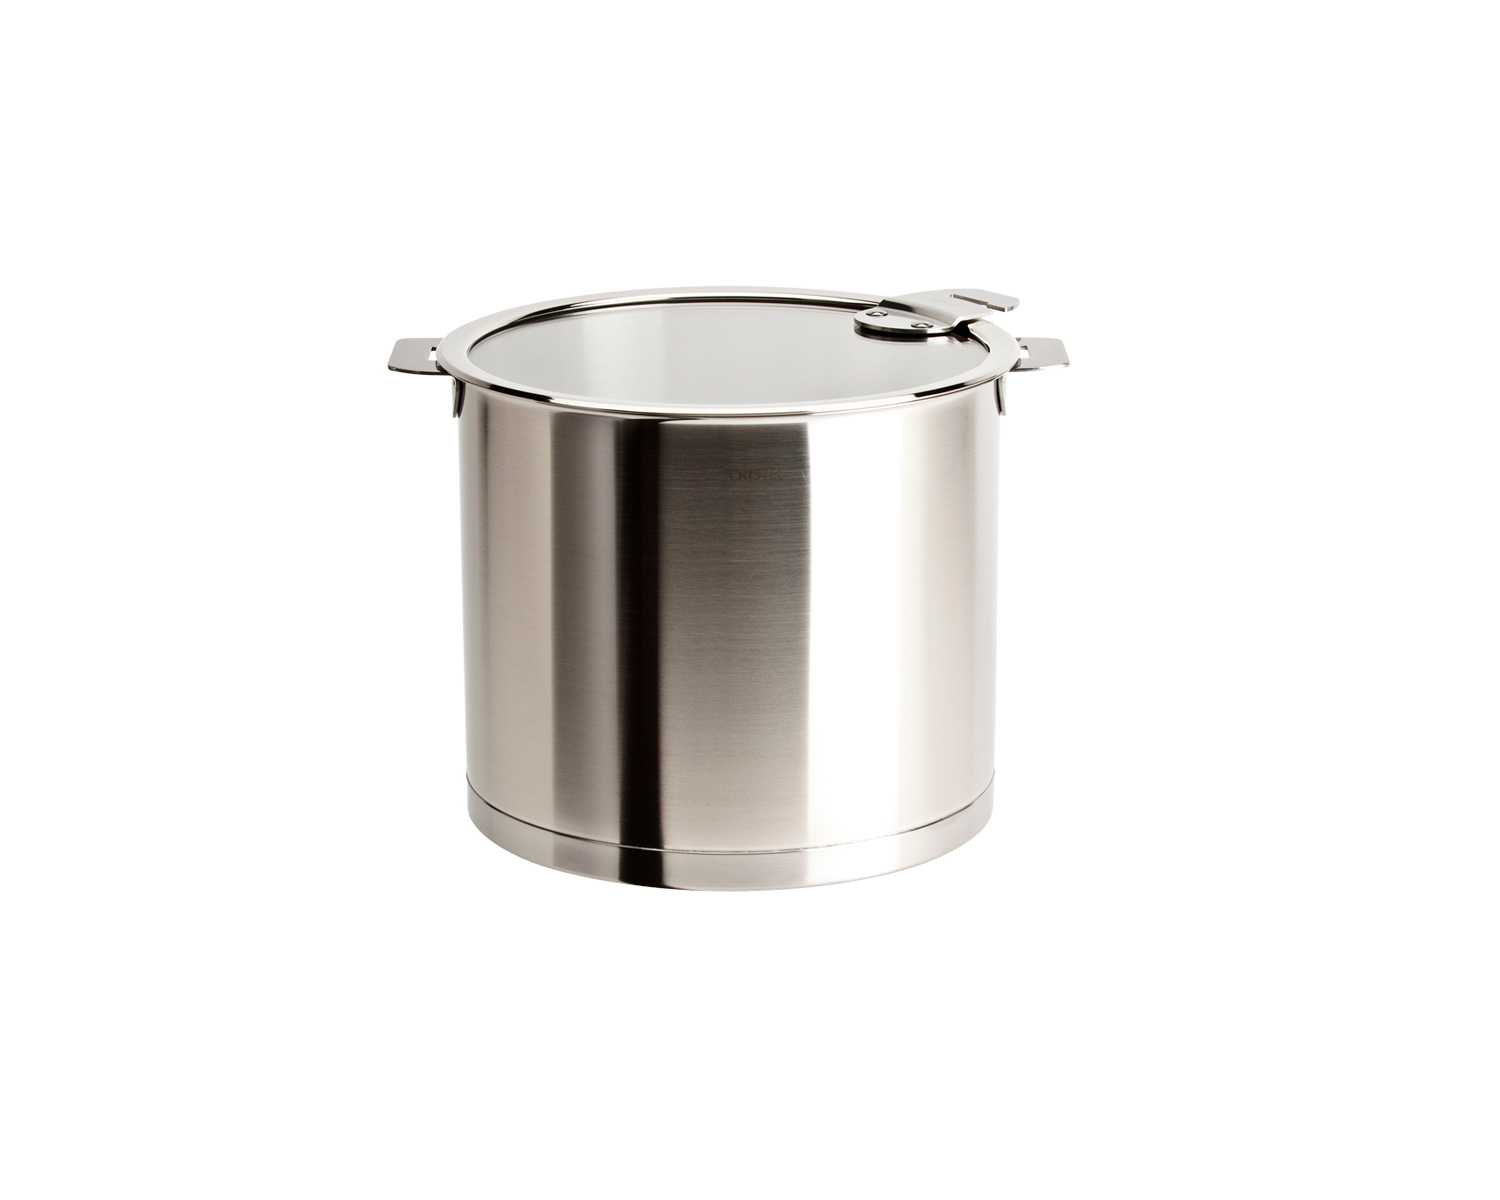 Cristel Strate Brushed Stainless Steel 5.5 qt. Stock Pot w/Glass Lid